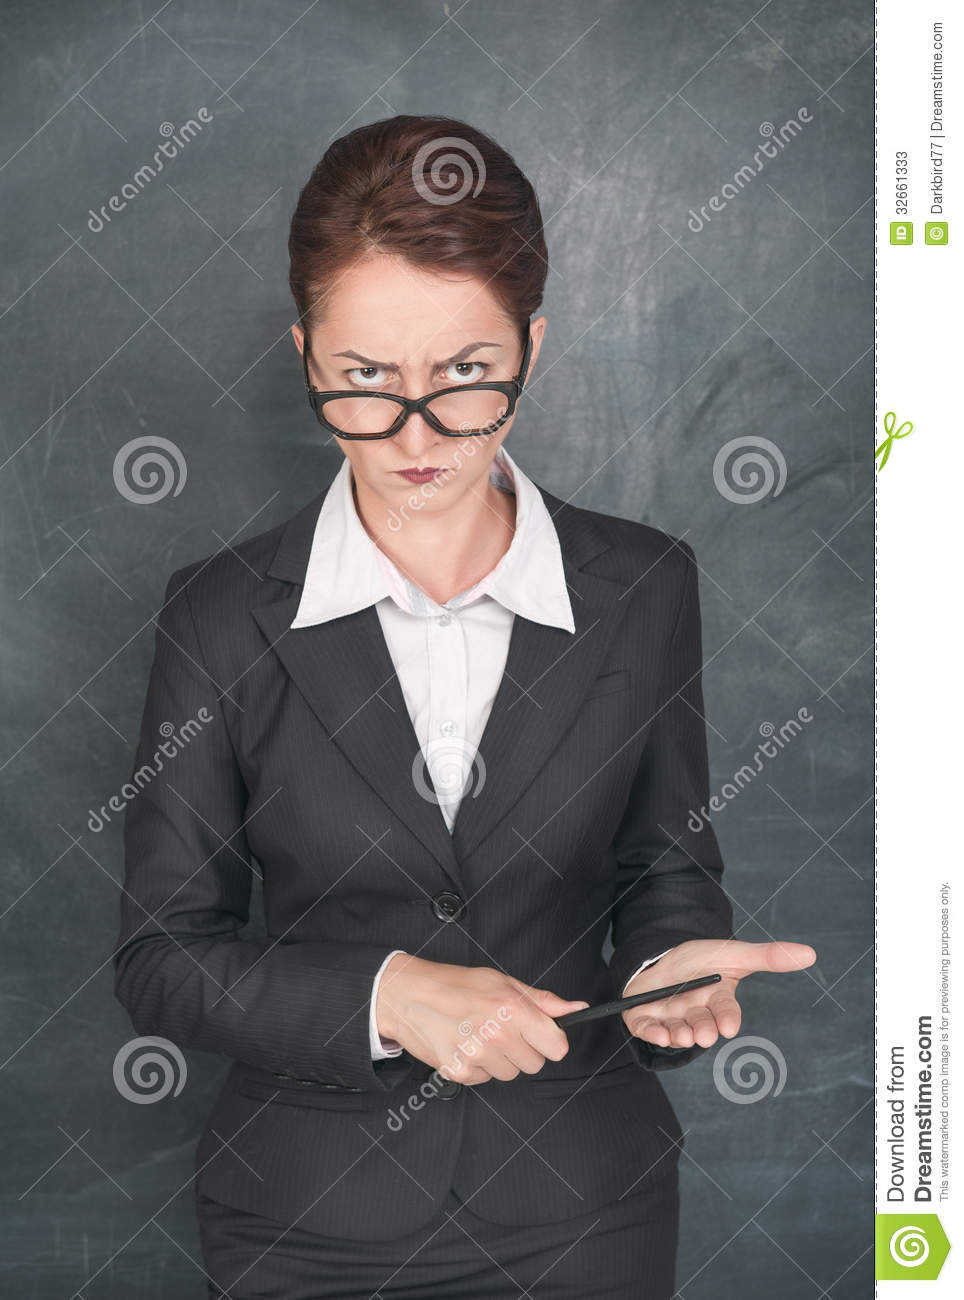 strict teacher with pointer stock image image of funny